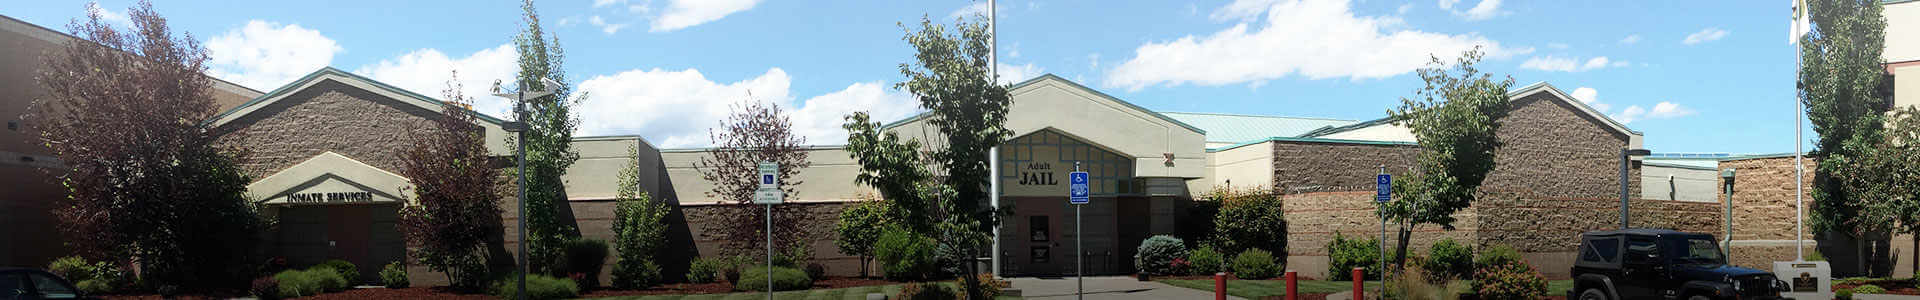 Posting Bail | Deschutes County Sheriff's Office in Oregon